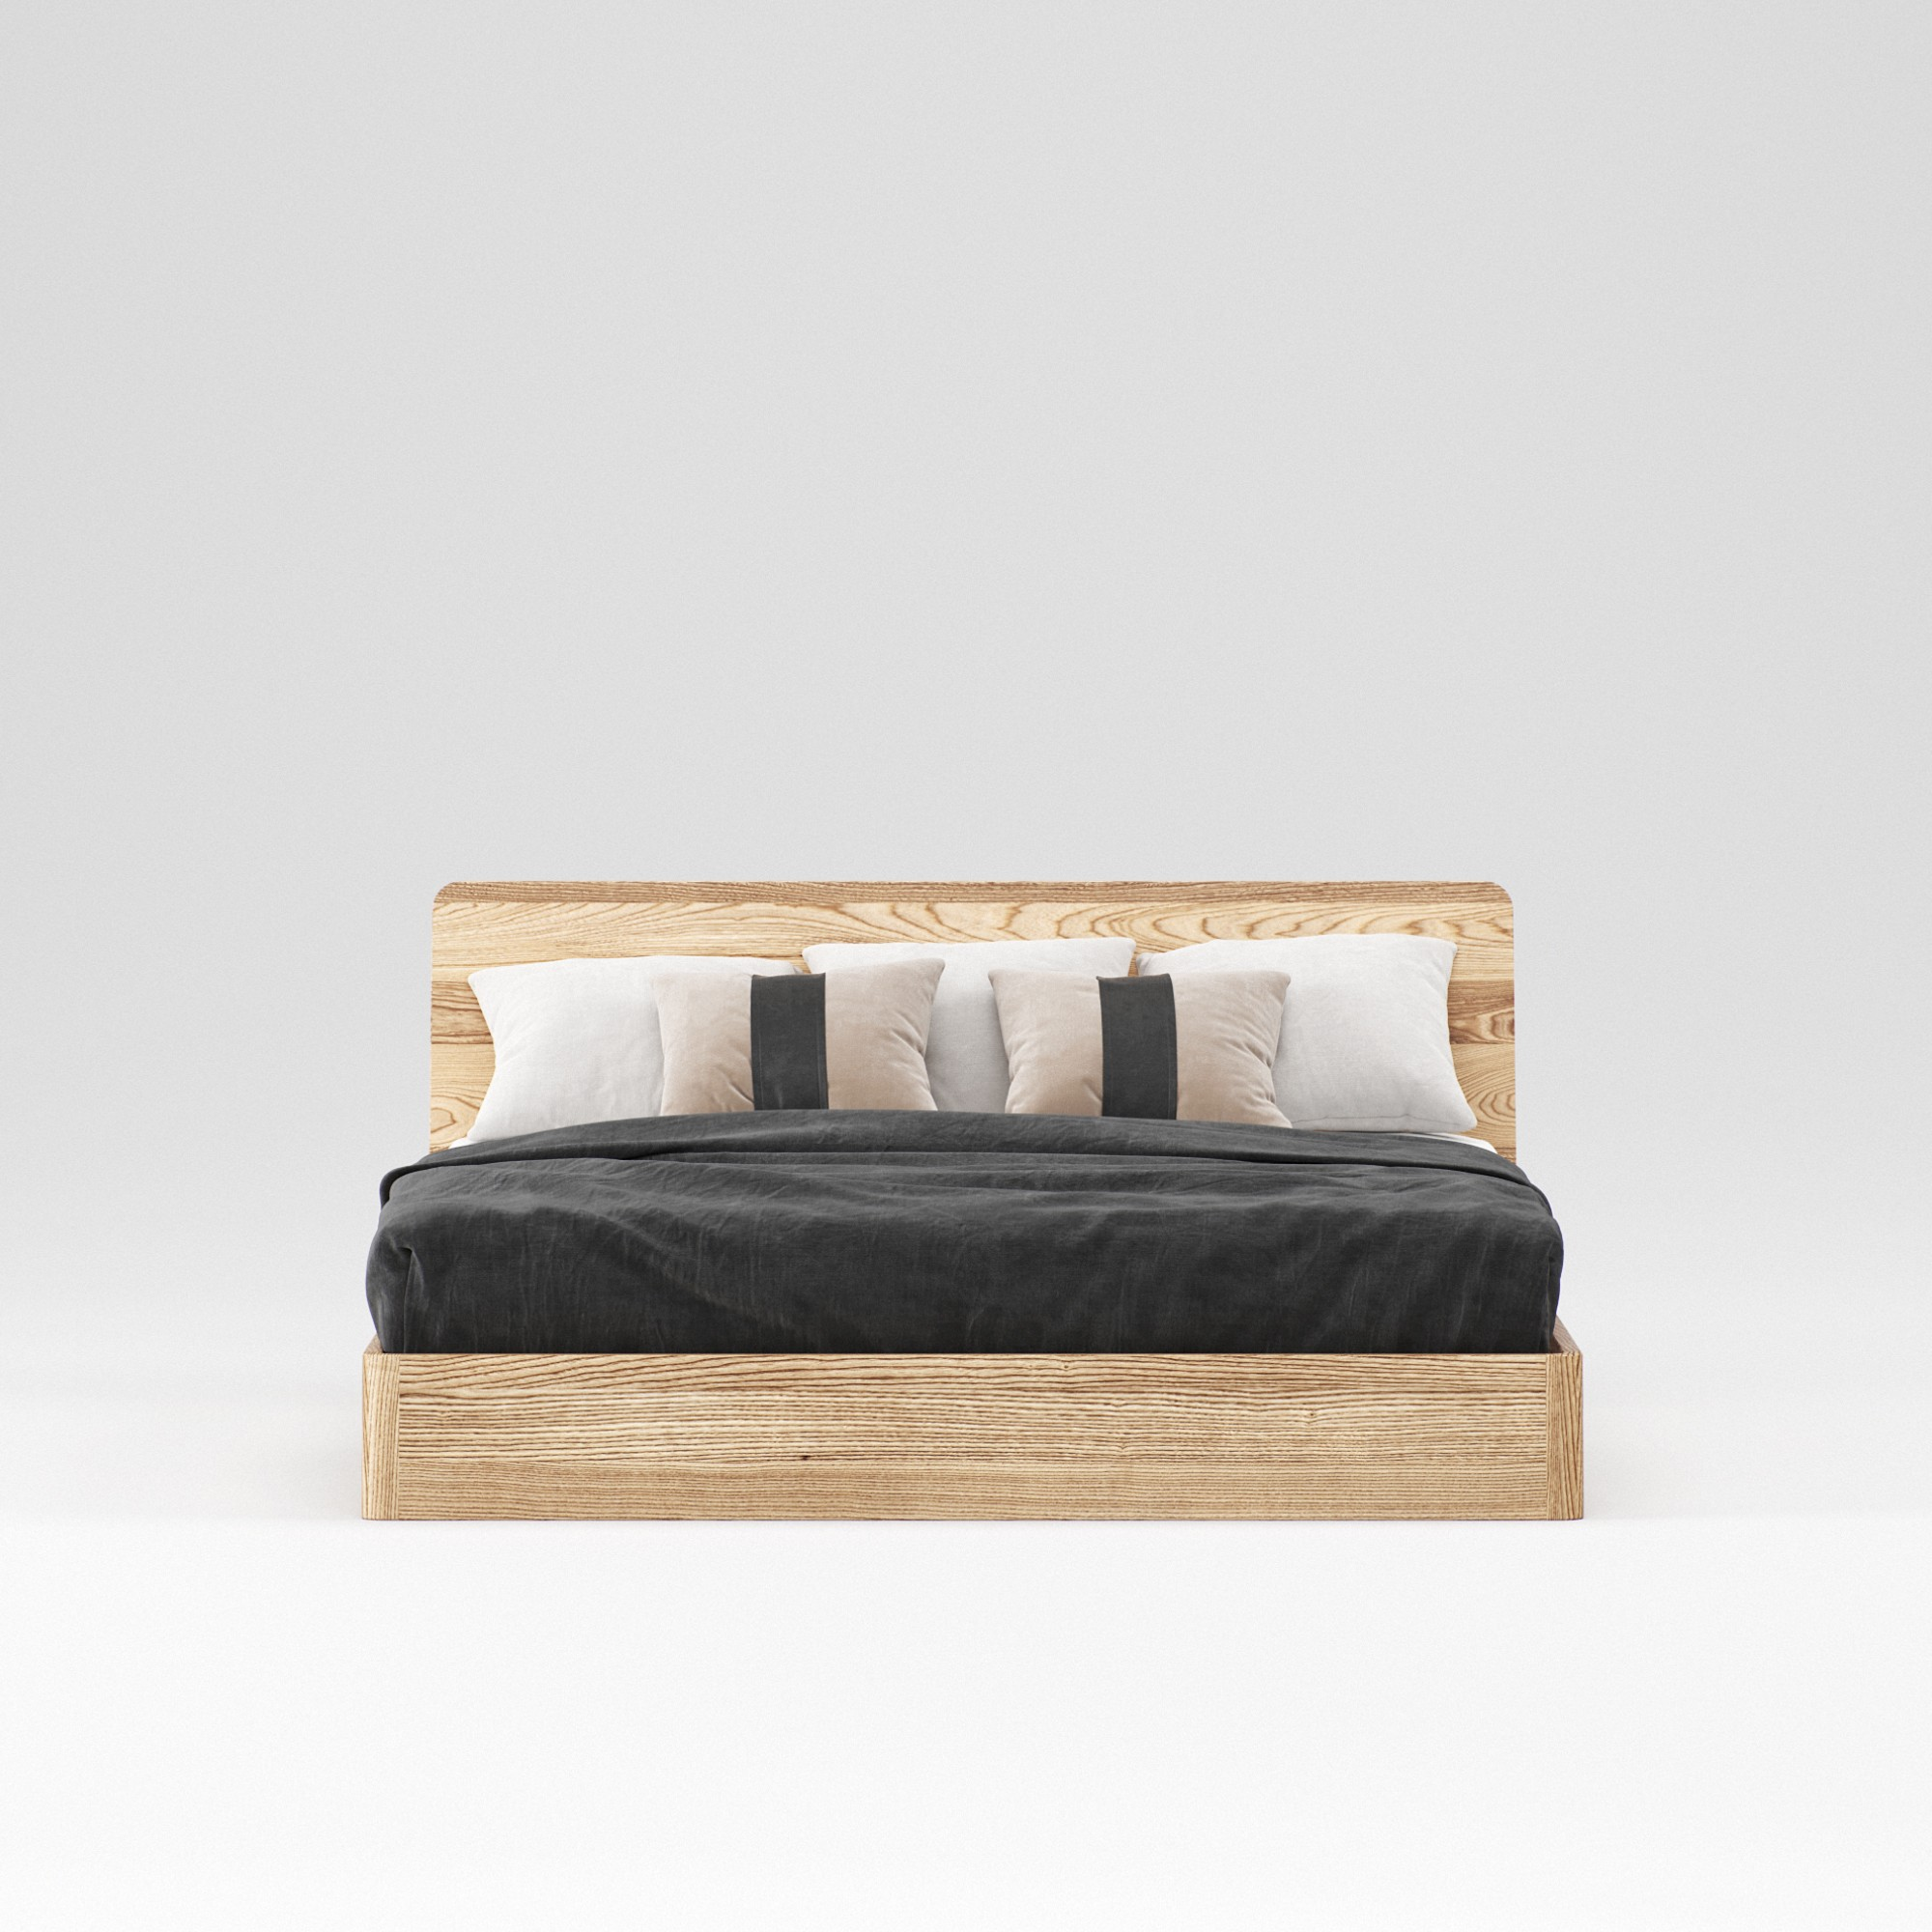 Double wooden bed Malme 180×200 – show room sample - Фото №3